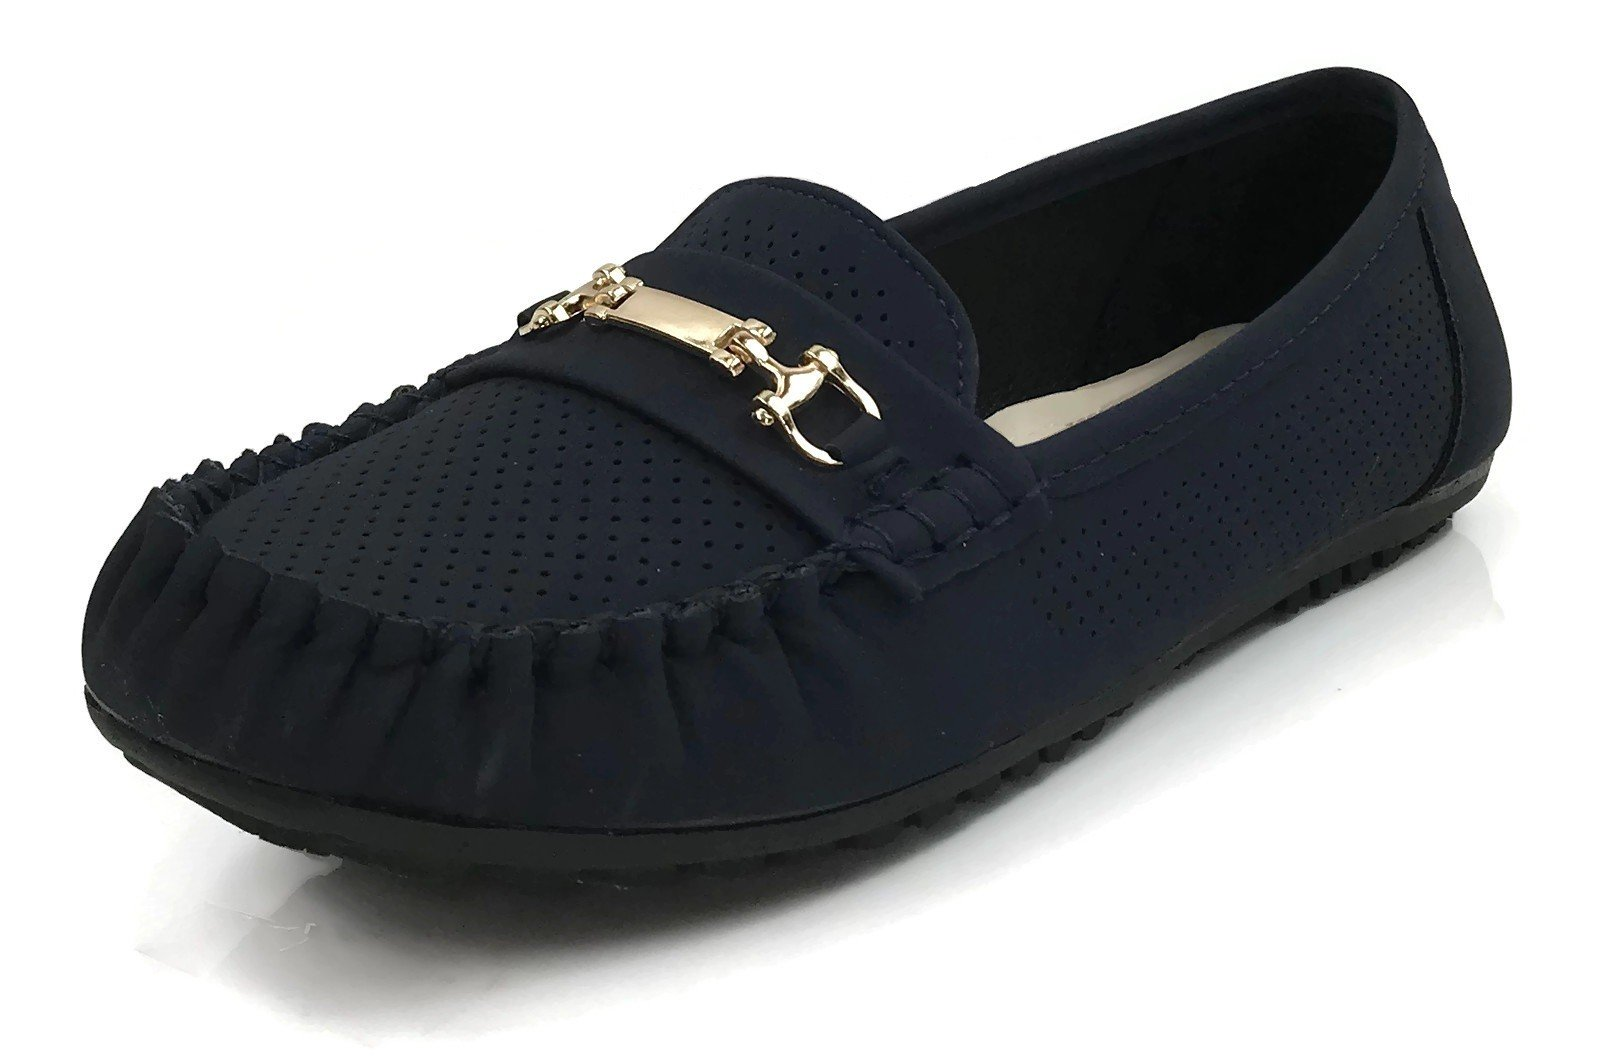 Wells Collection Womens Frannie Slip On Moccasin Loafer Comfort Flat, Navy 8.5